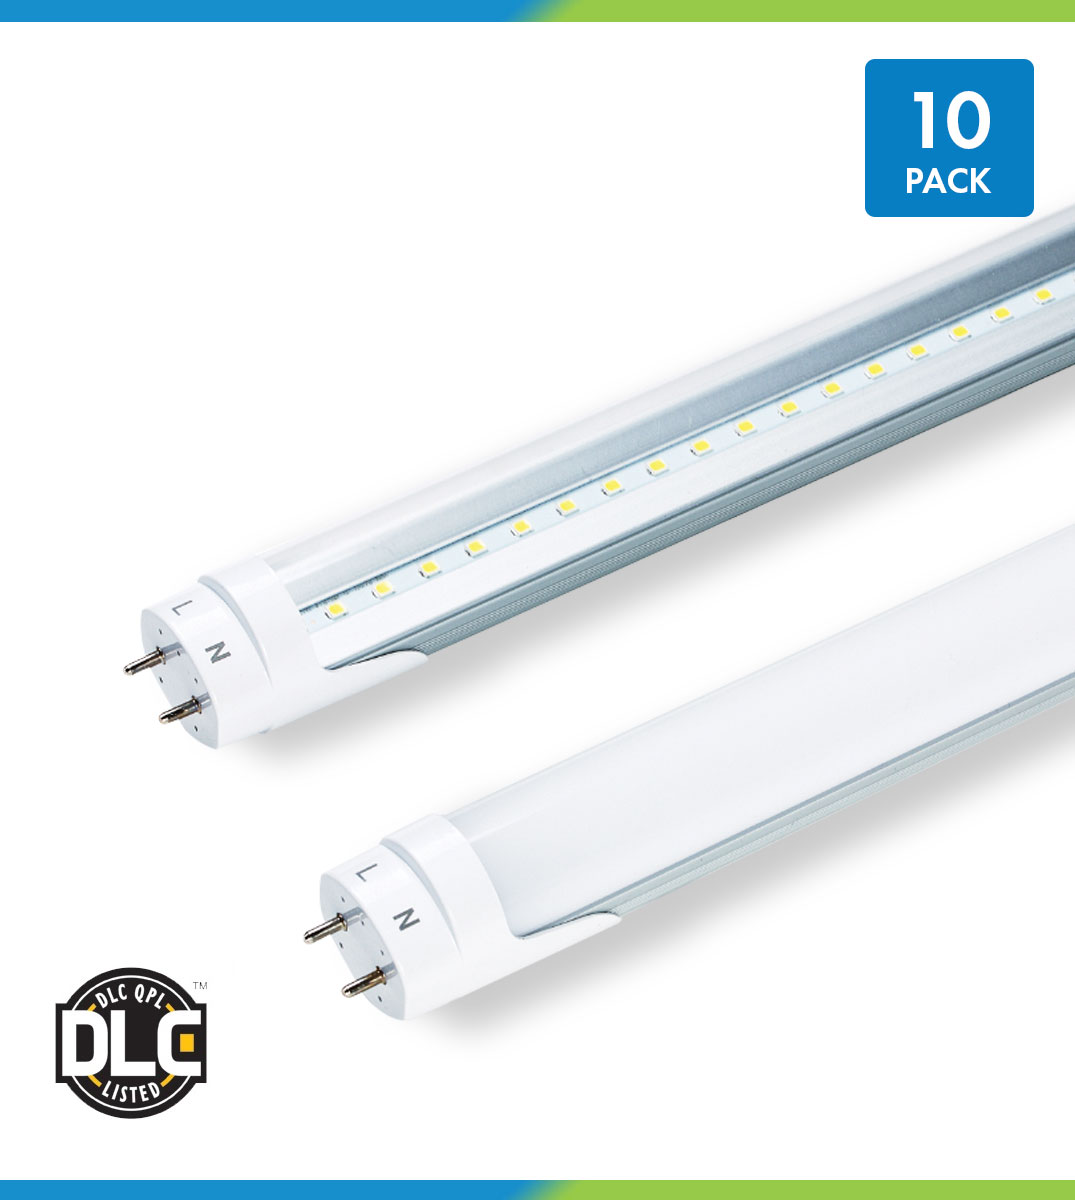 Fluorescent Tube Led Light T8 Led Hybrid Tubes 10 Pack Ballast Compatible Bypass 4 Foot